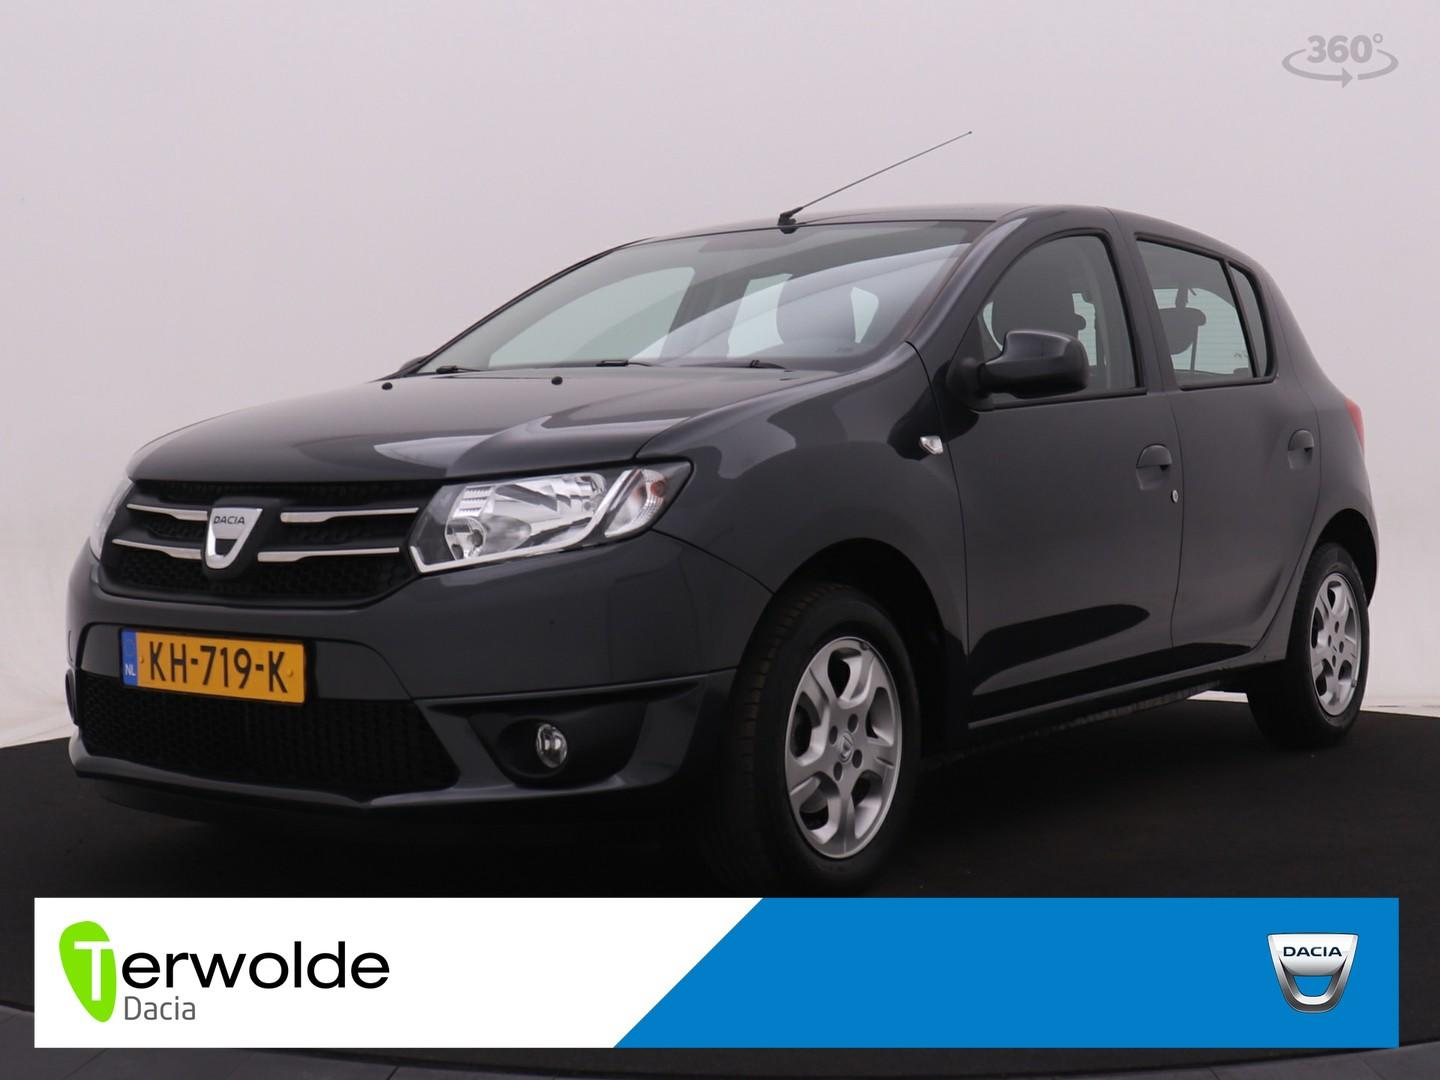 Dacia Sandero 0.9 tce easy-r lauréate automaat automaat